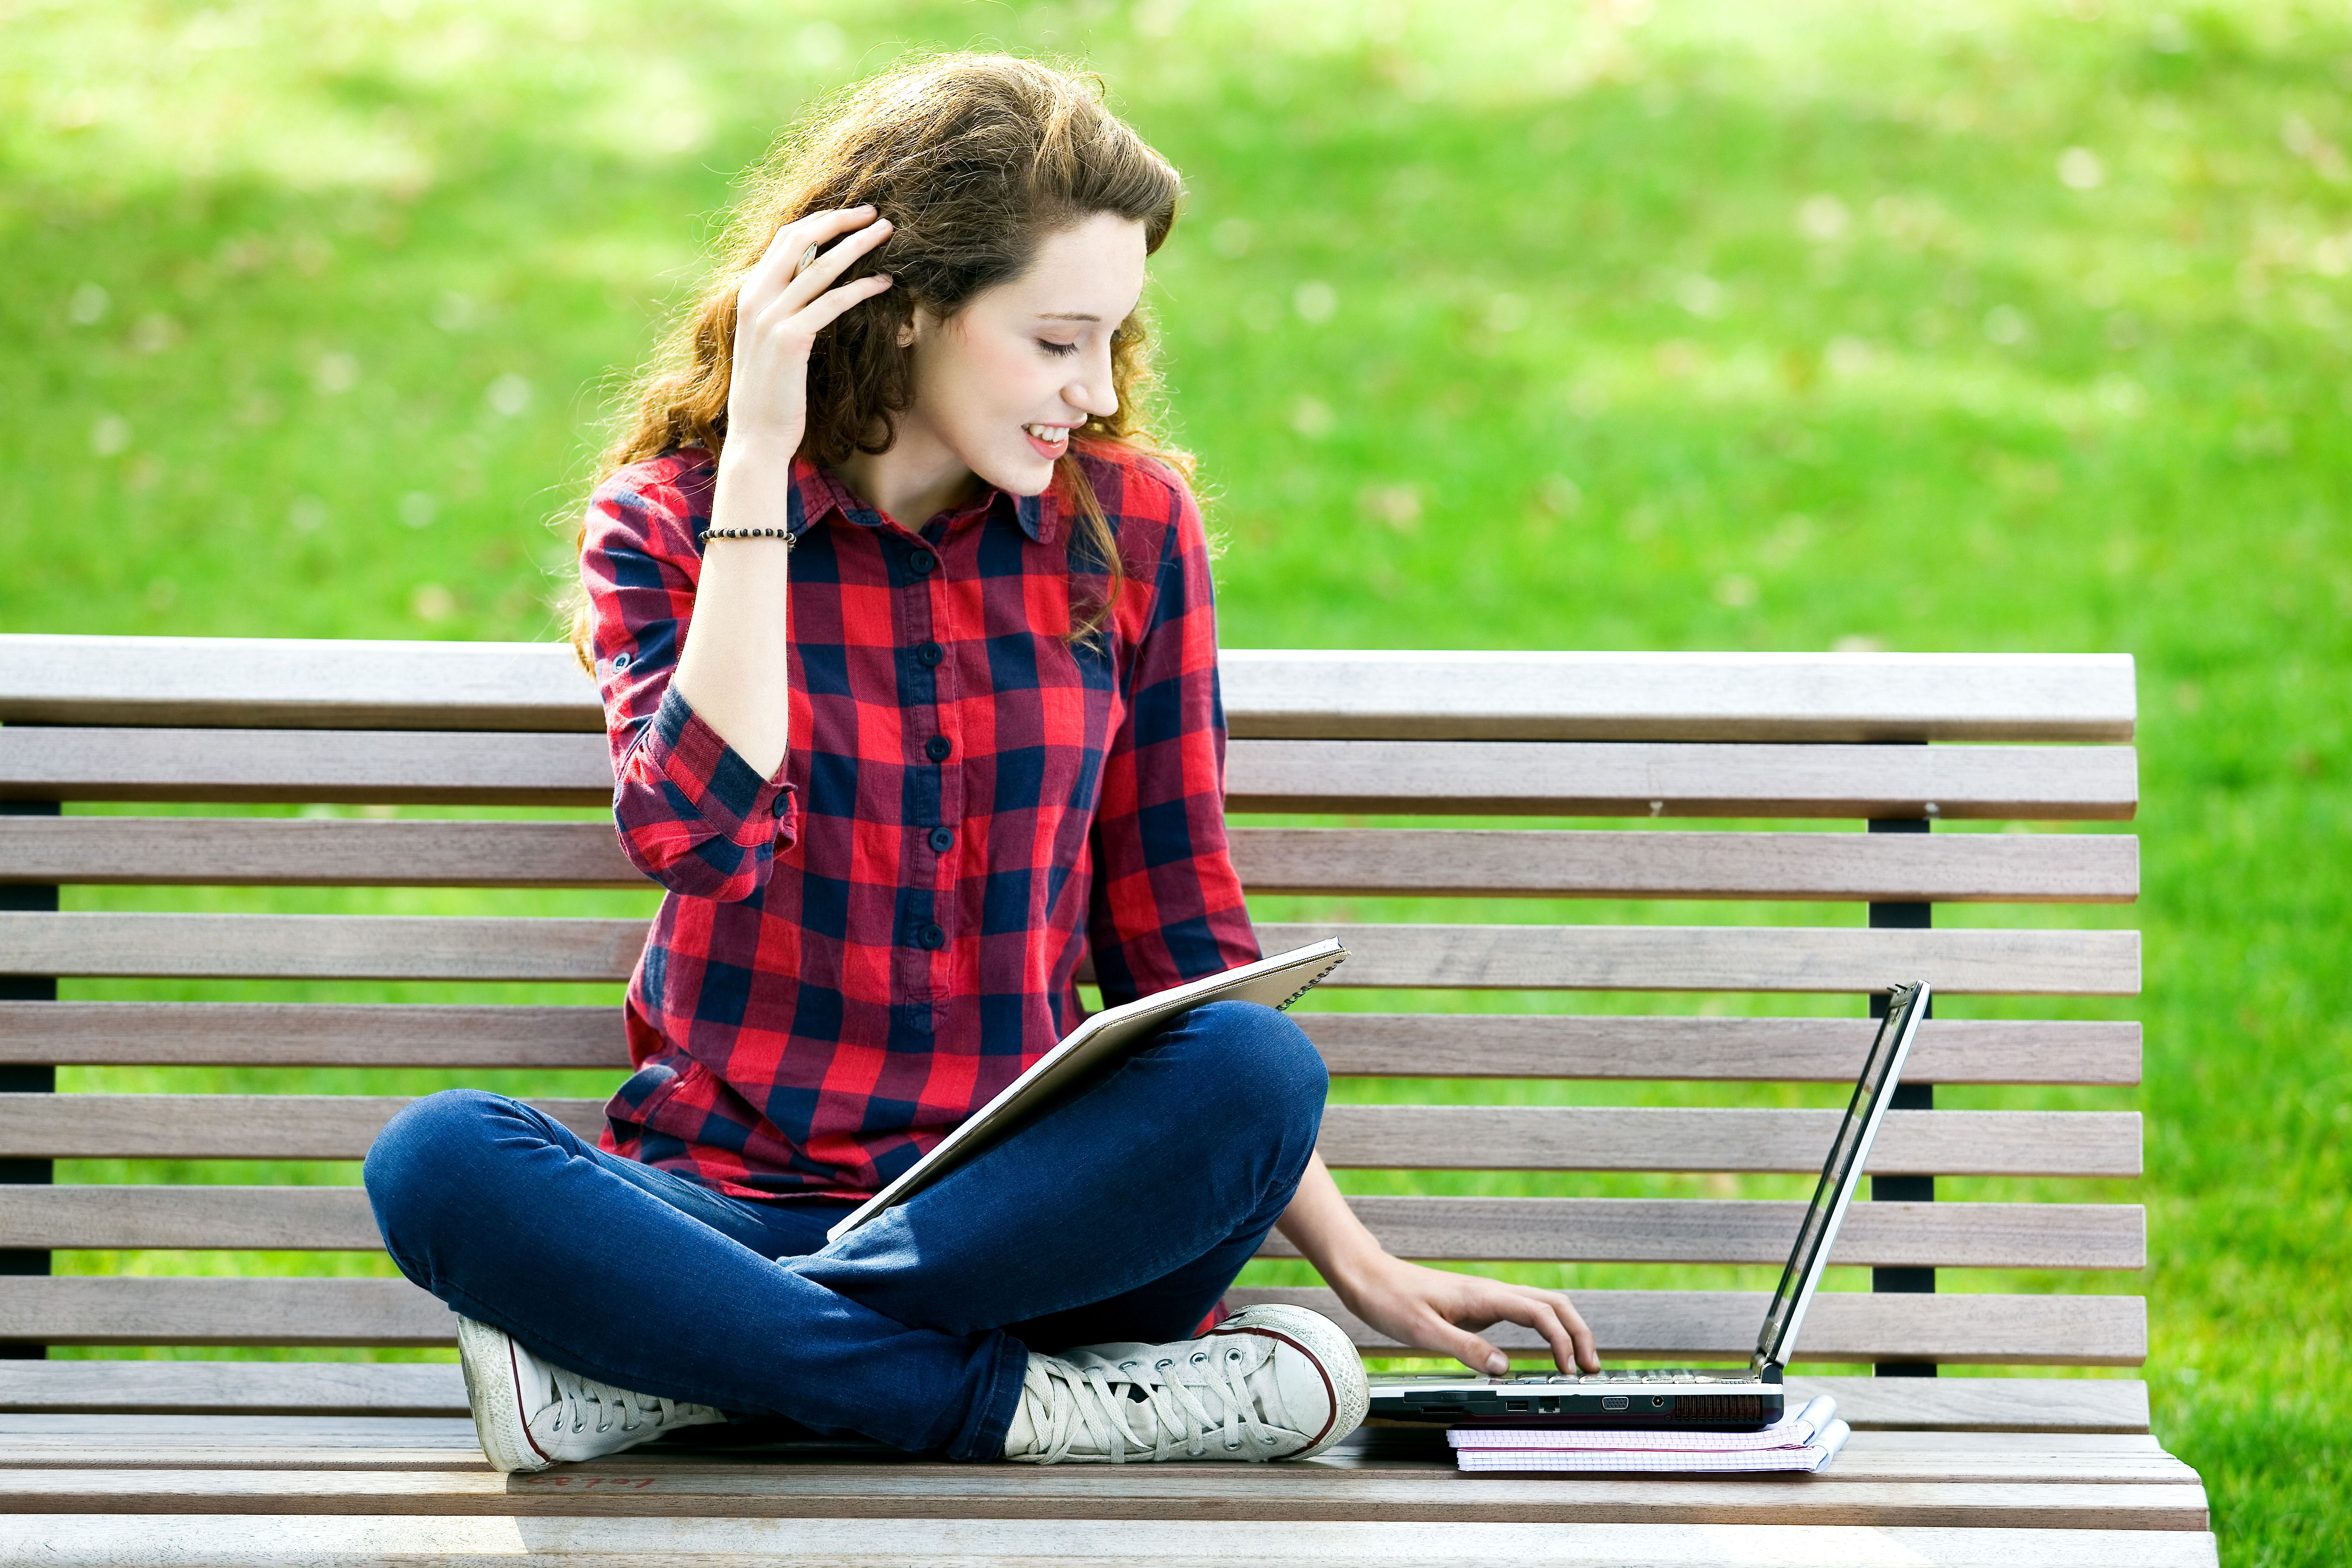 20182019 Common Application Essay Prompts Essay writing